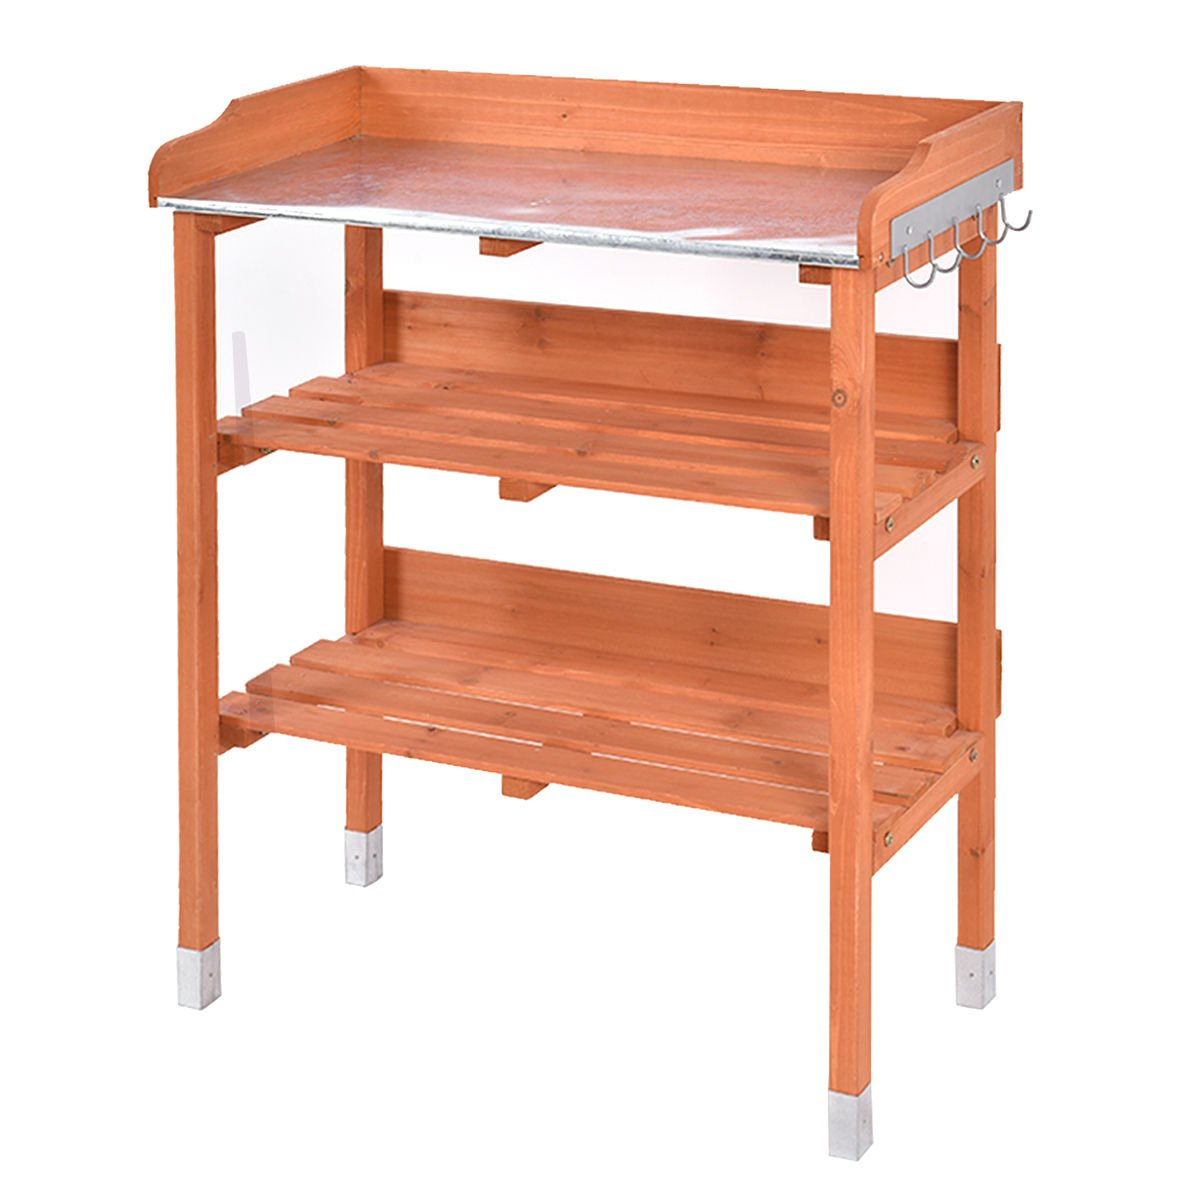 New Wood Outdoor Garden Wooden Potting Bench Work Station Table Tool Storage Shelf W/Hook